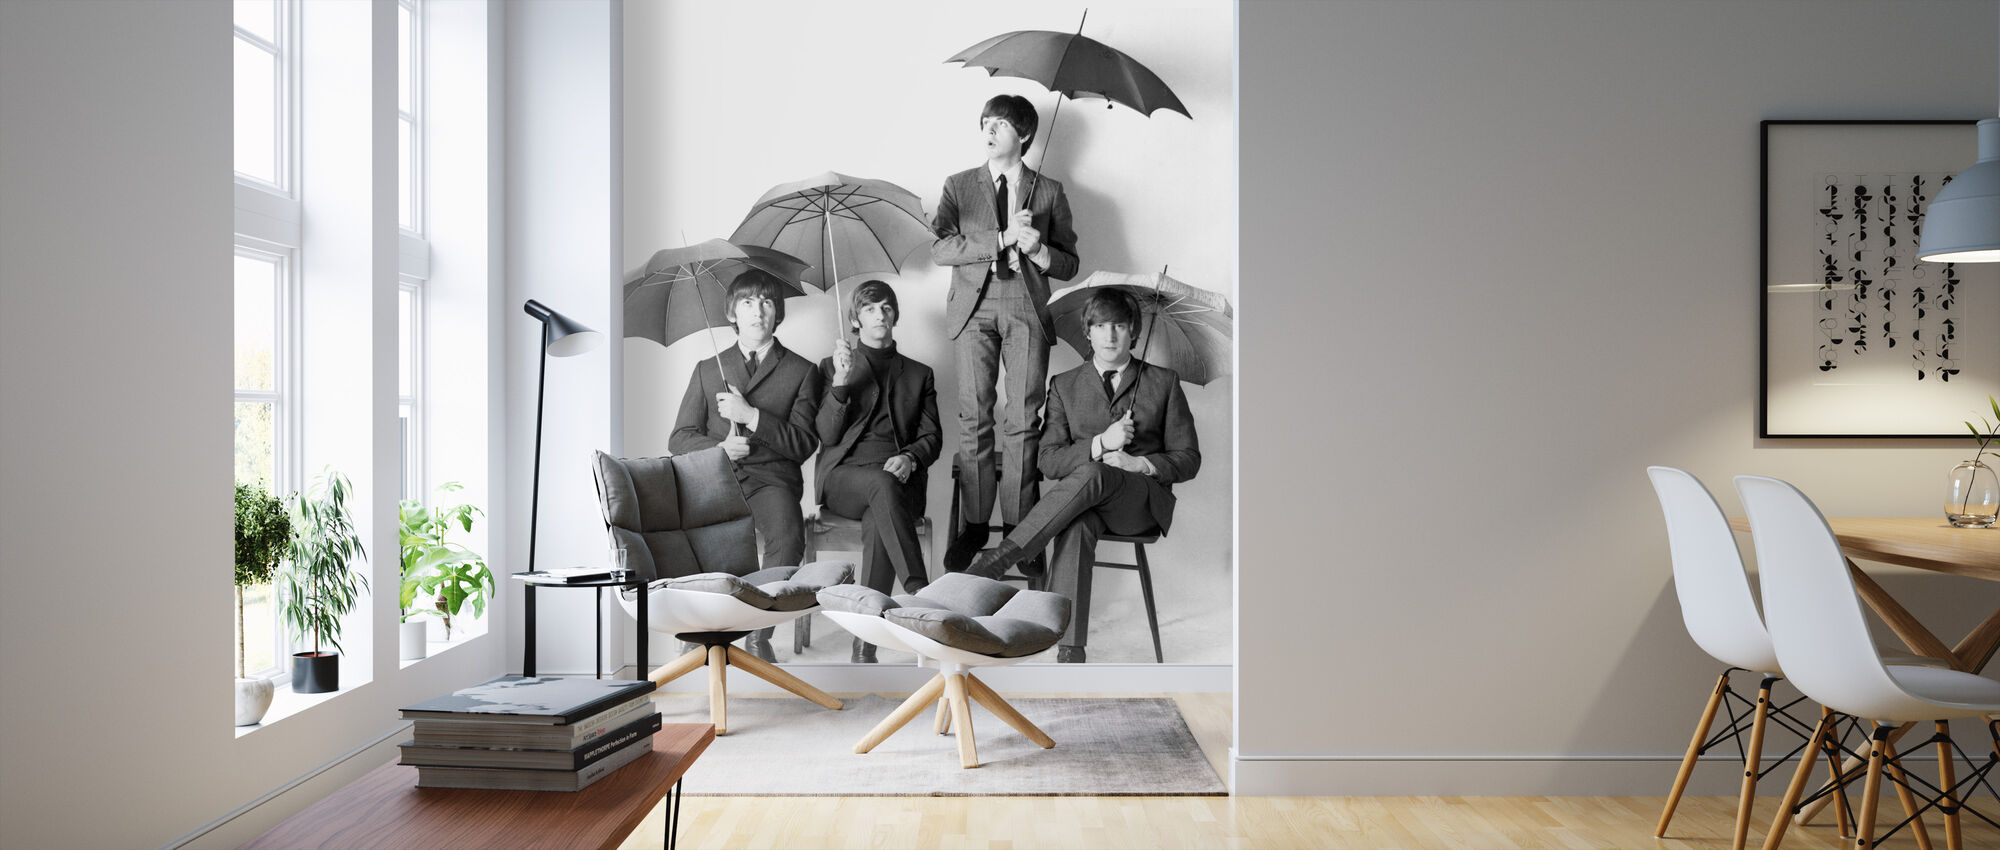 The Beatles - Umbrellas - Wallpaper - Living Room